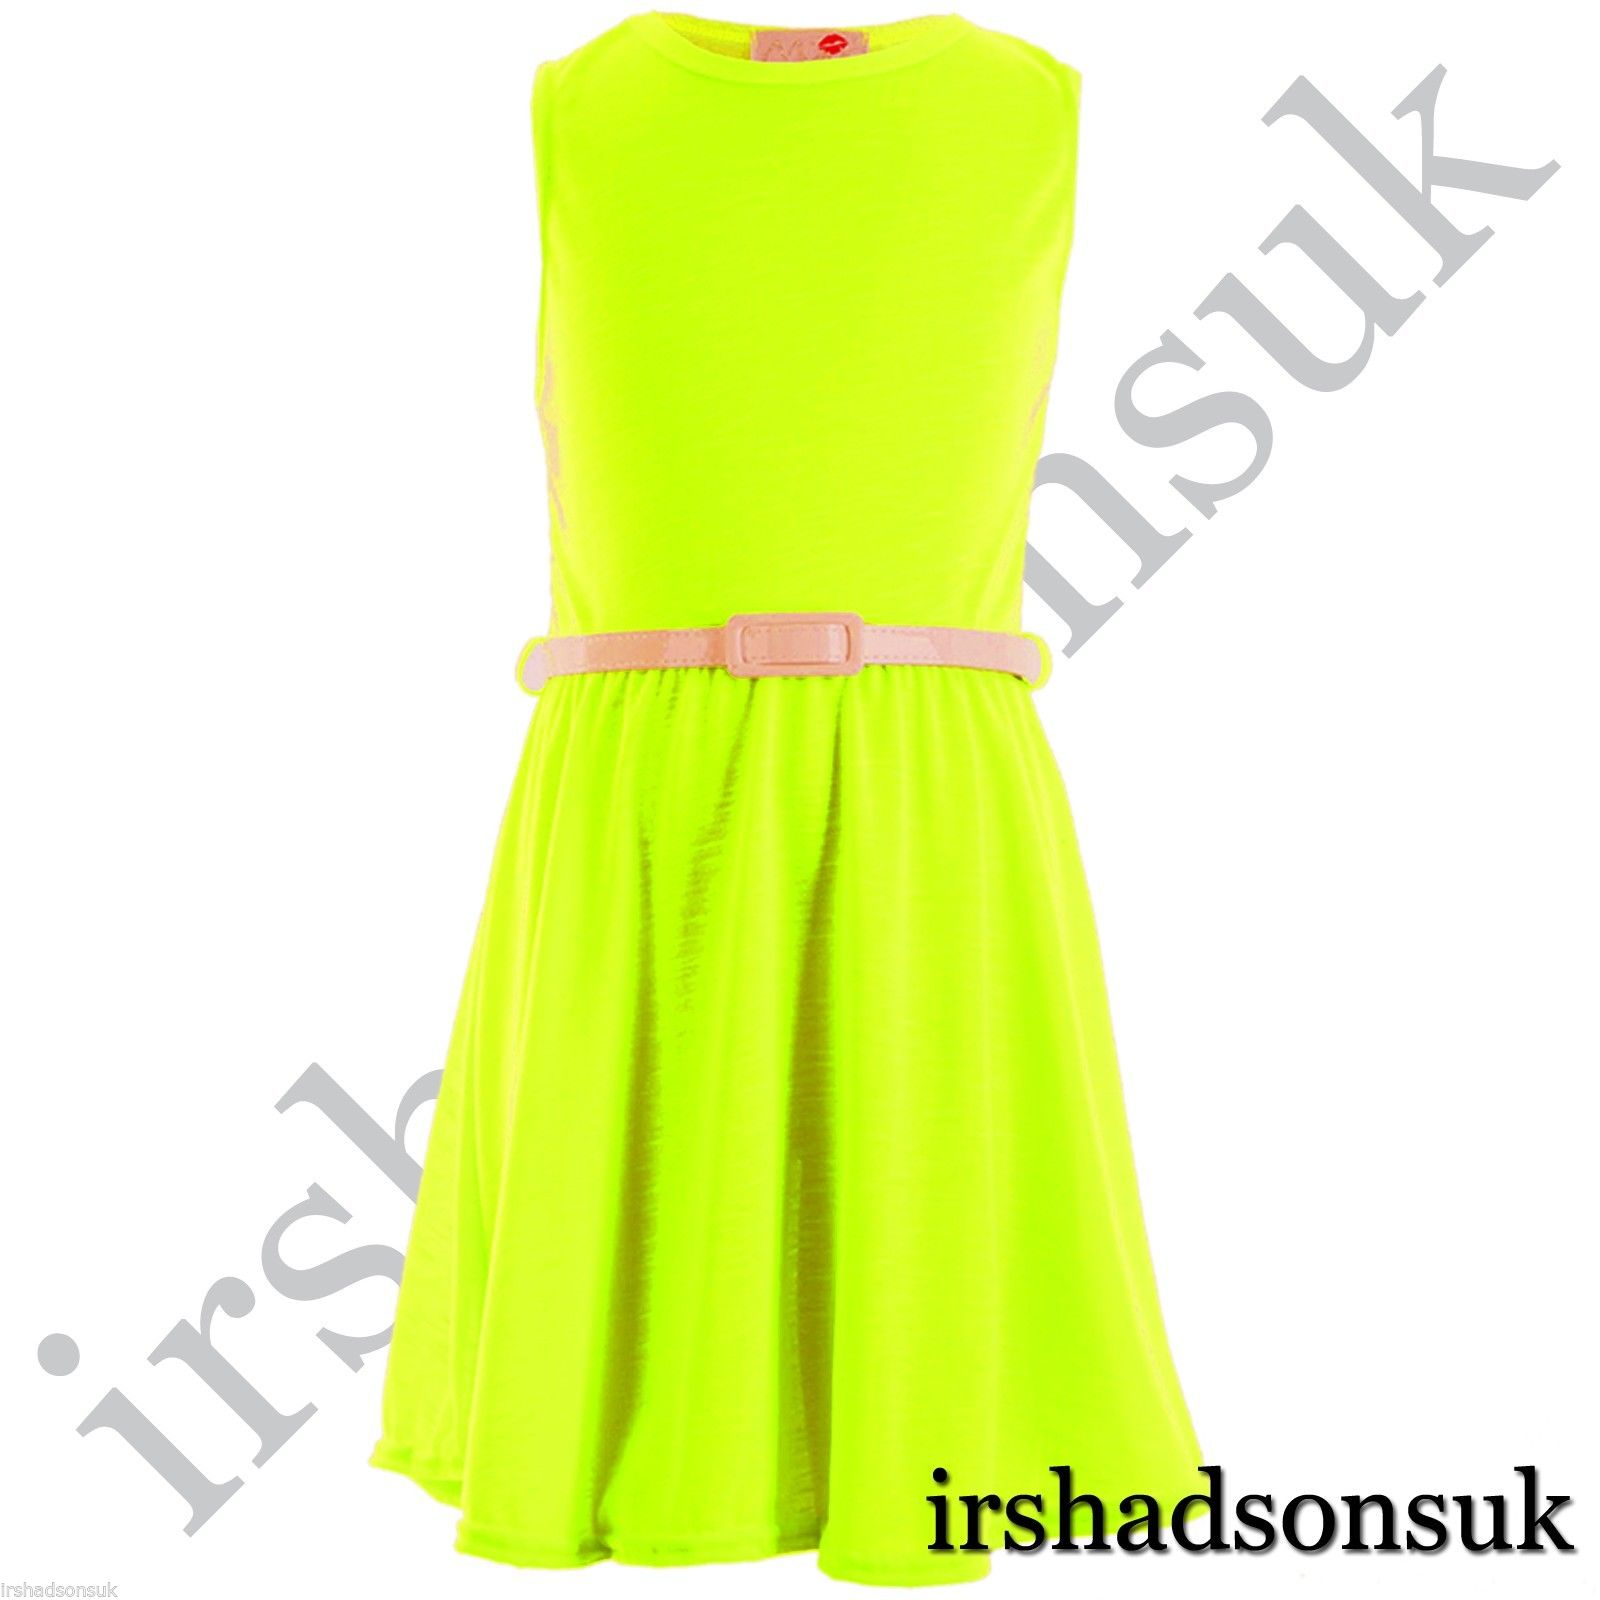 Girls Skater Dress Kids Neon Bright Summer Party Dresses 7 8 9 10 11 12 13 Years